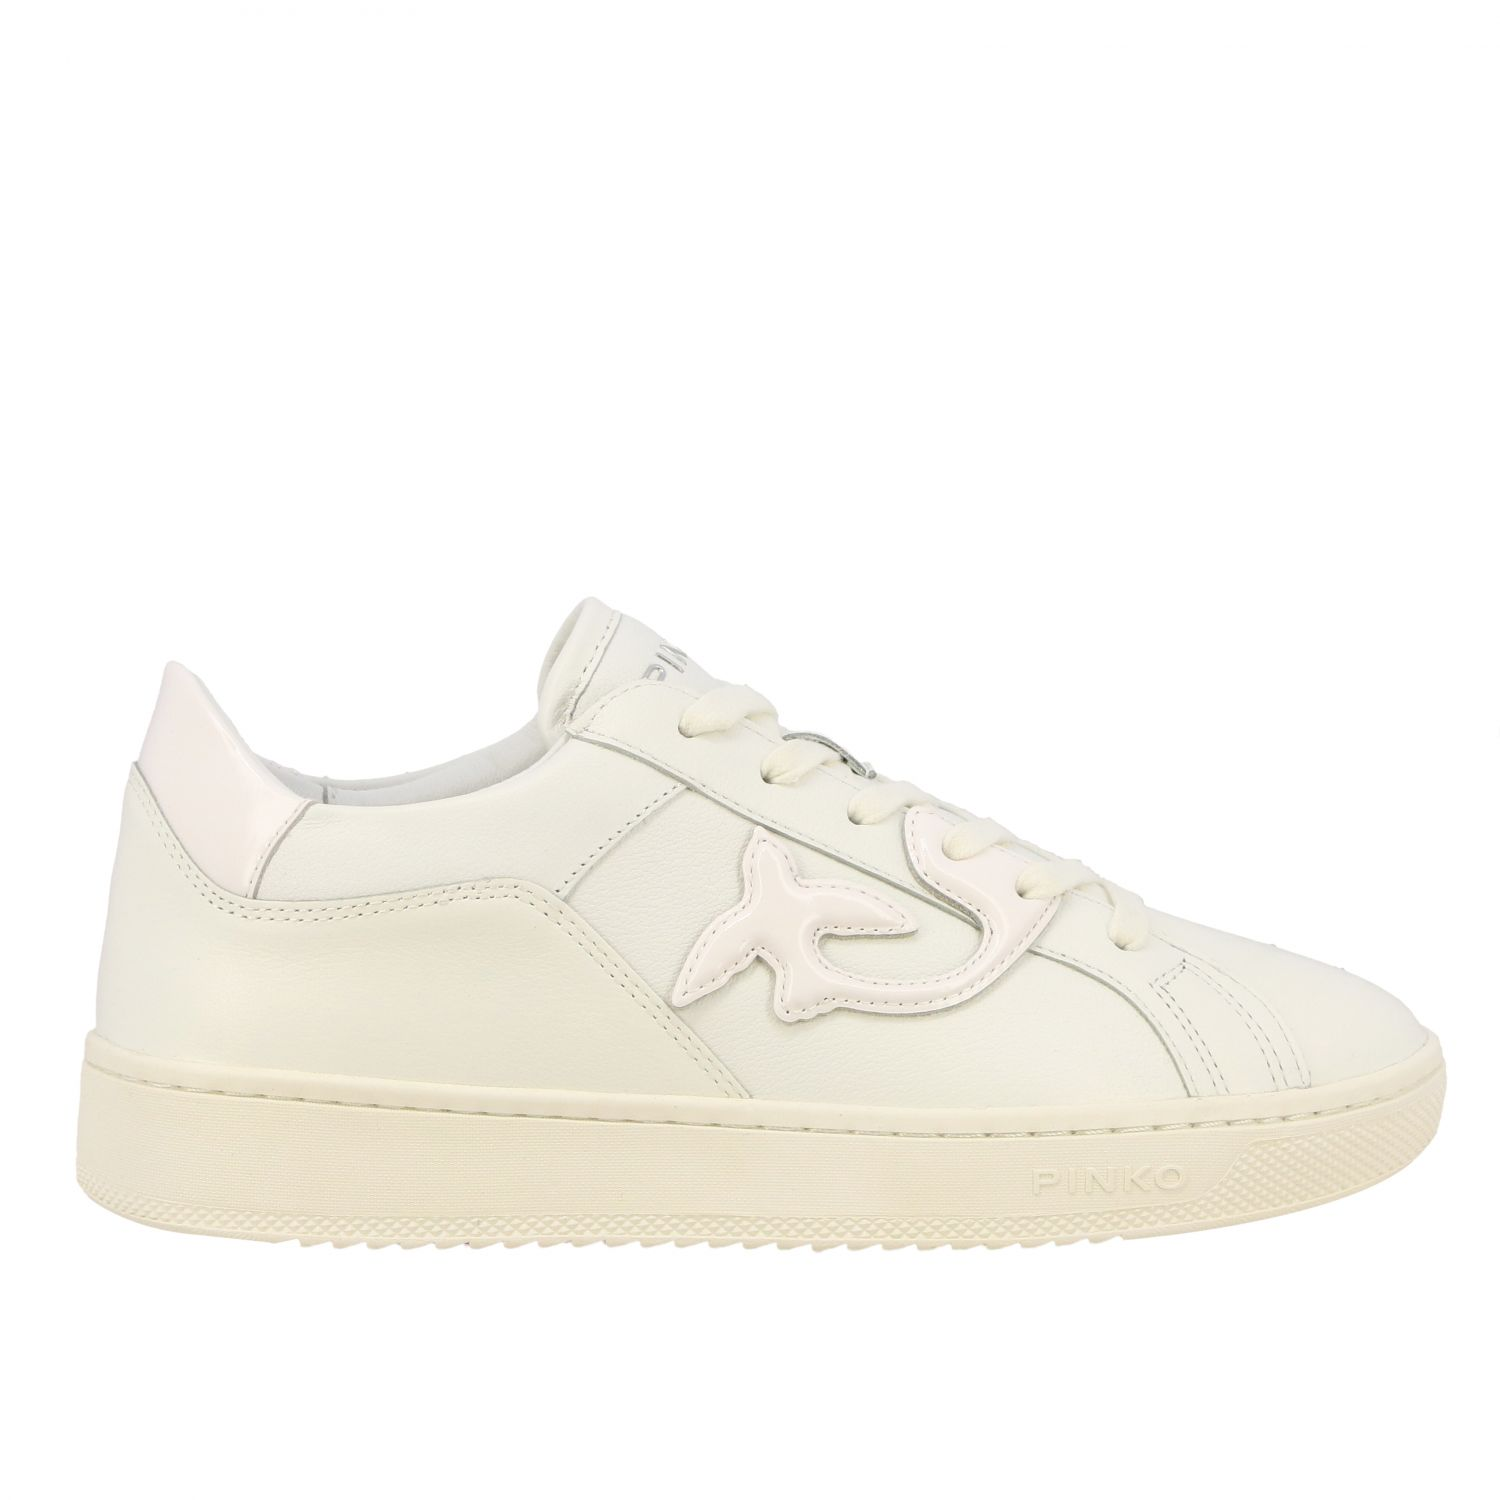 Shoes women Pinko white 1